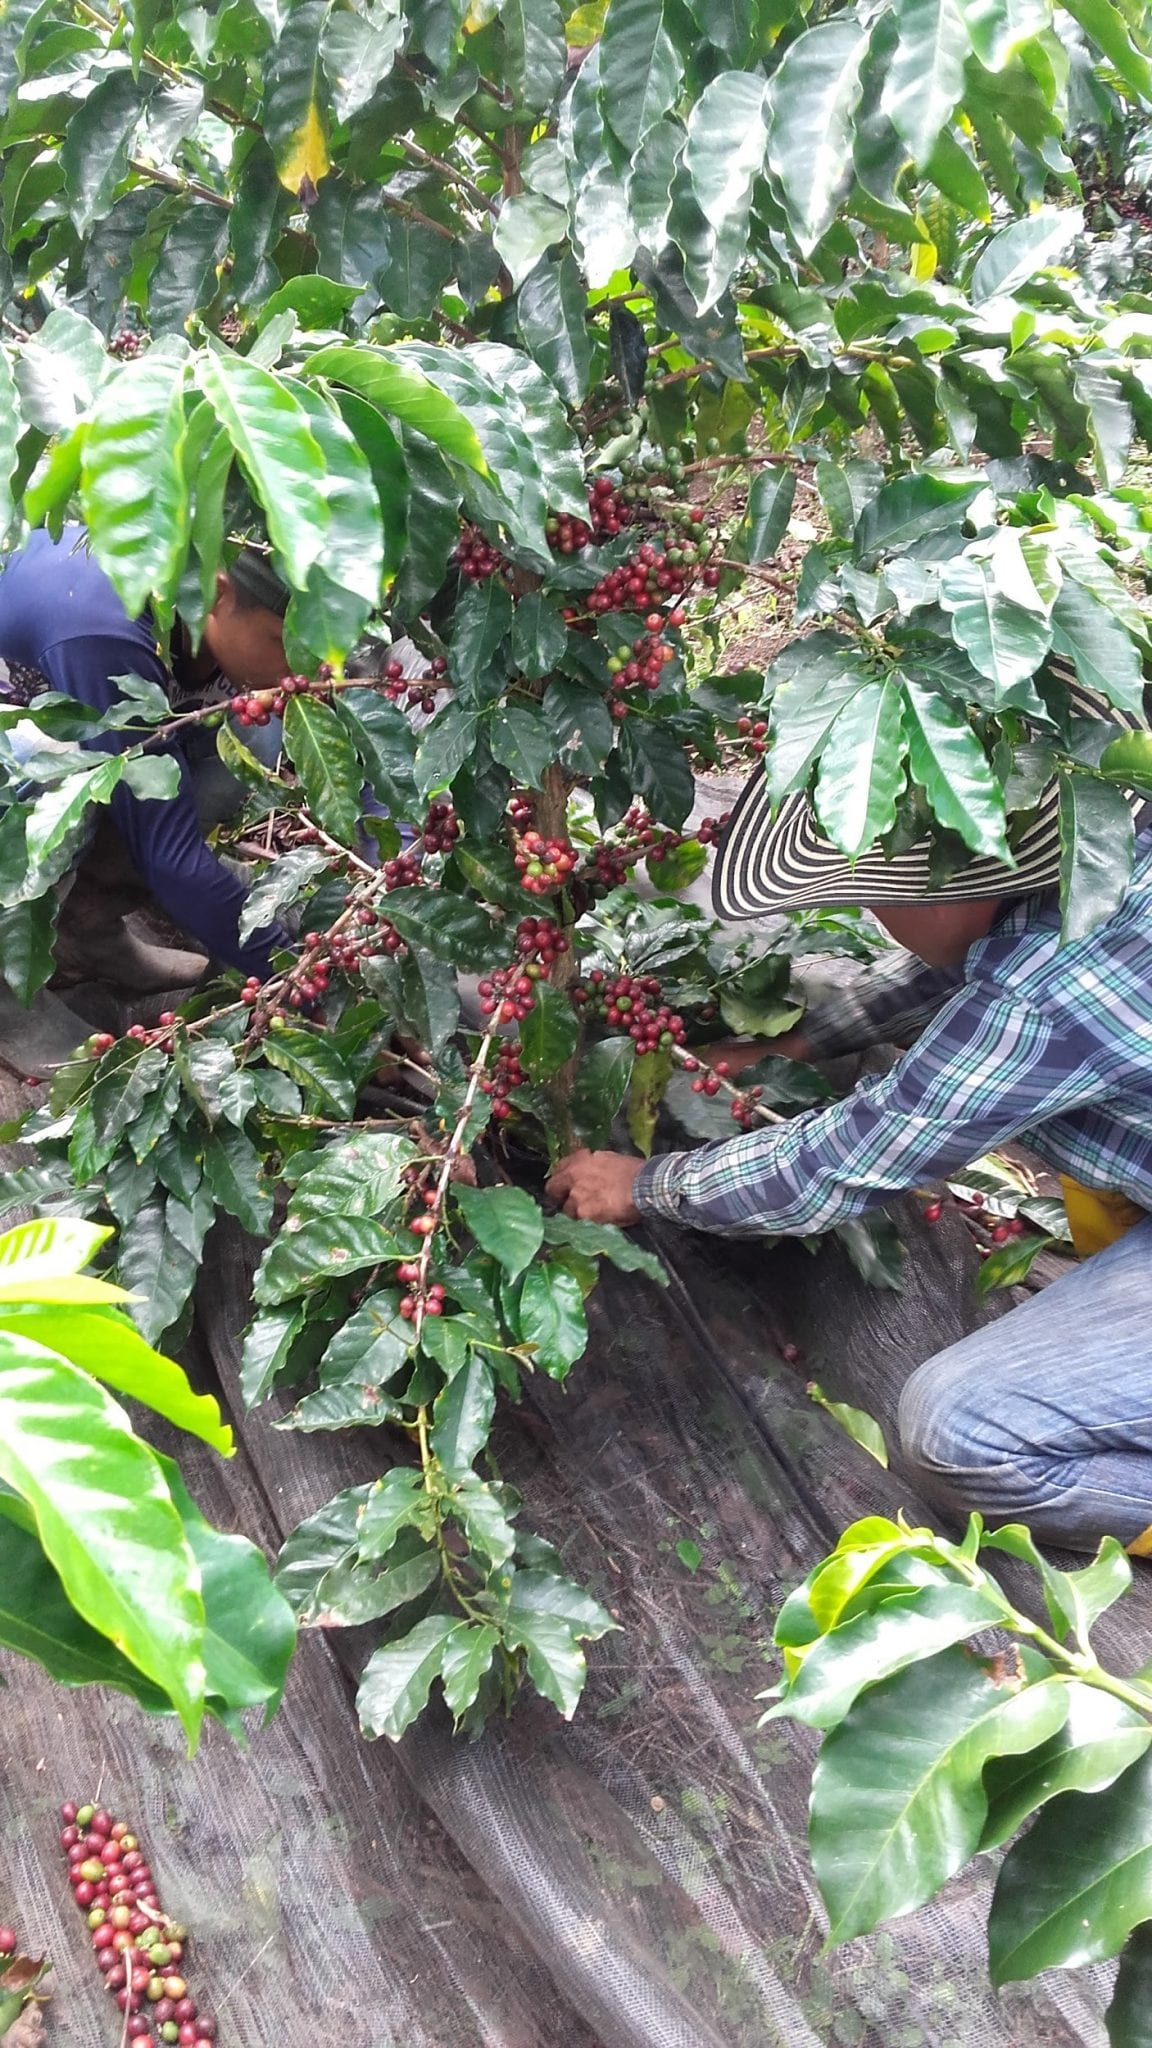 Coffee producers pick ripe coffee cherries